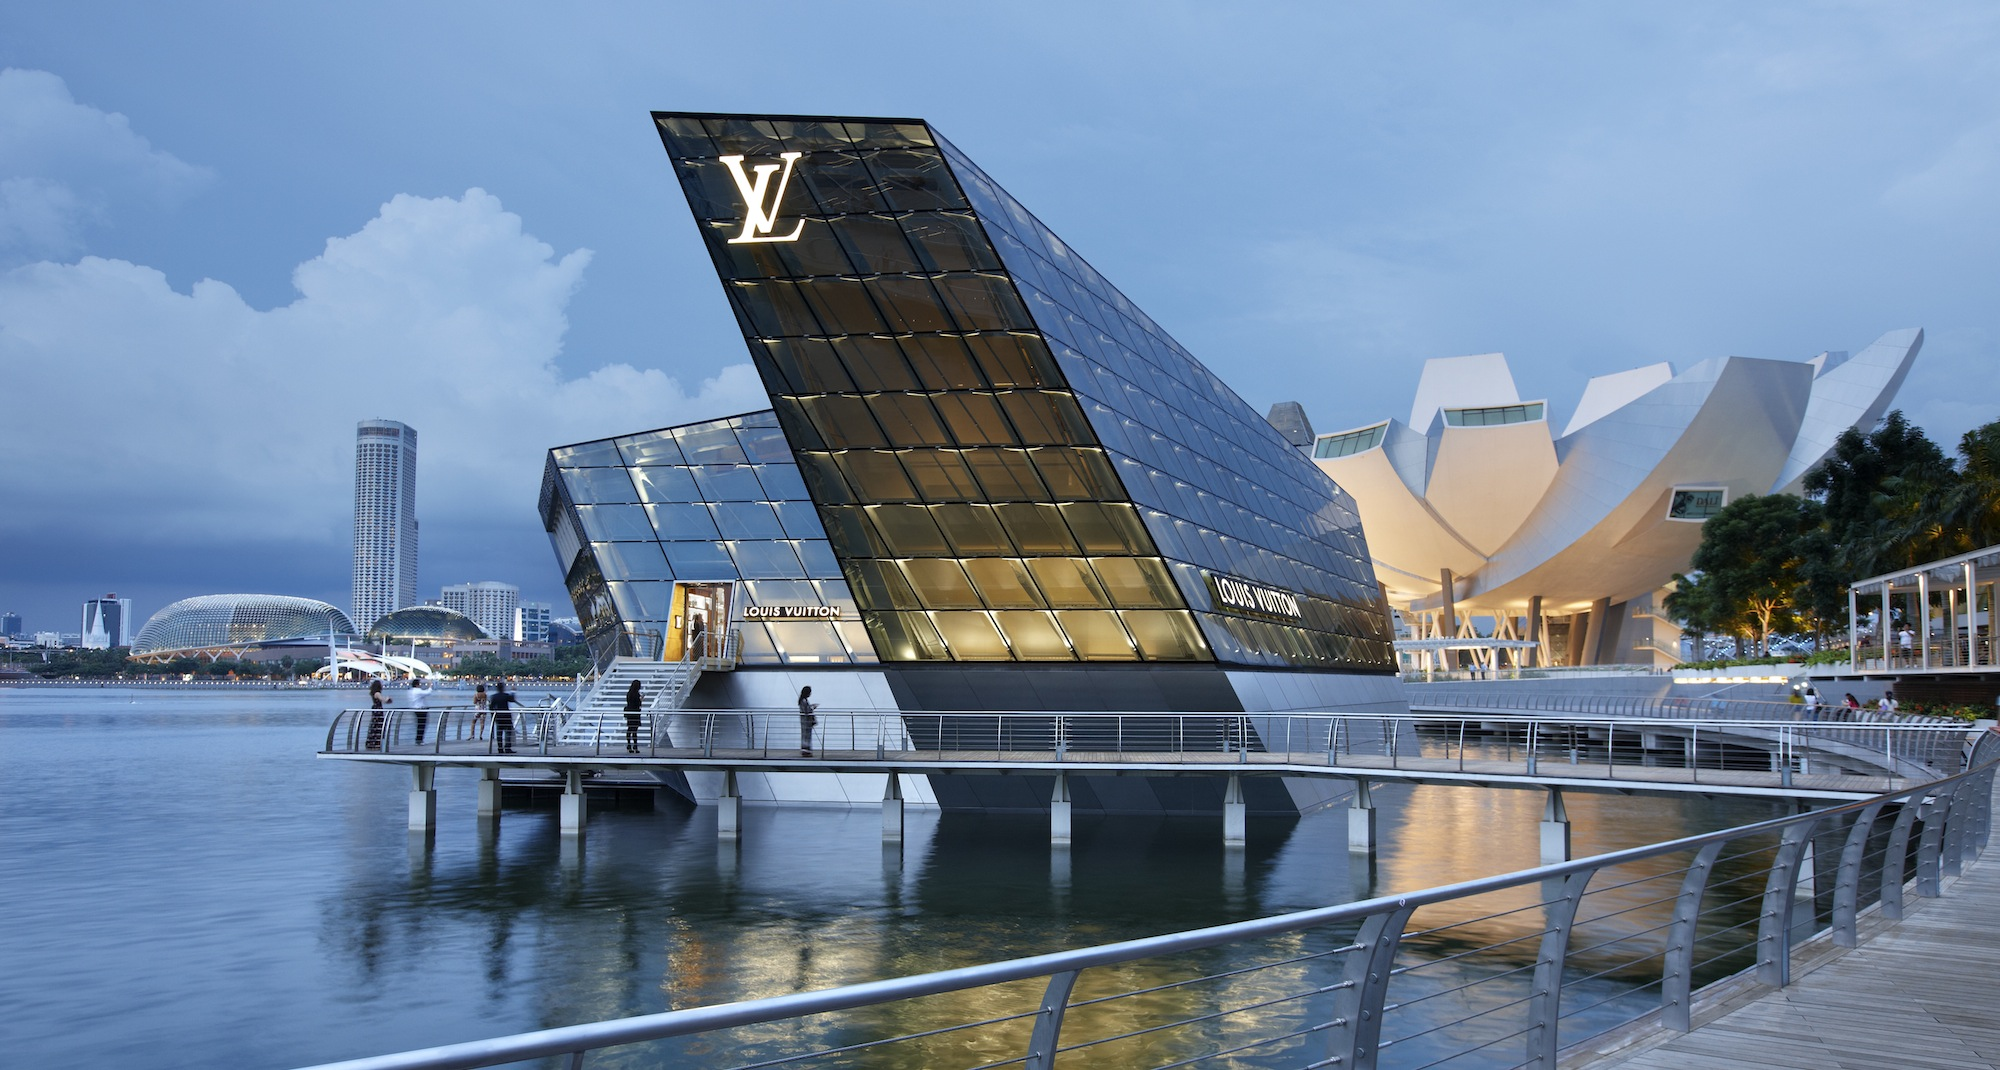 Maison-Louis-Vuitton-of-Marina-Bay-Singapore